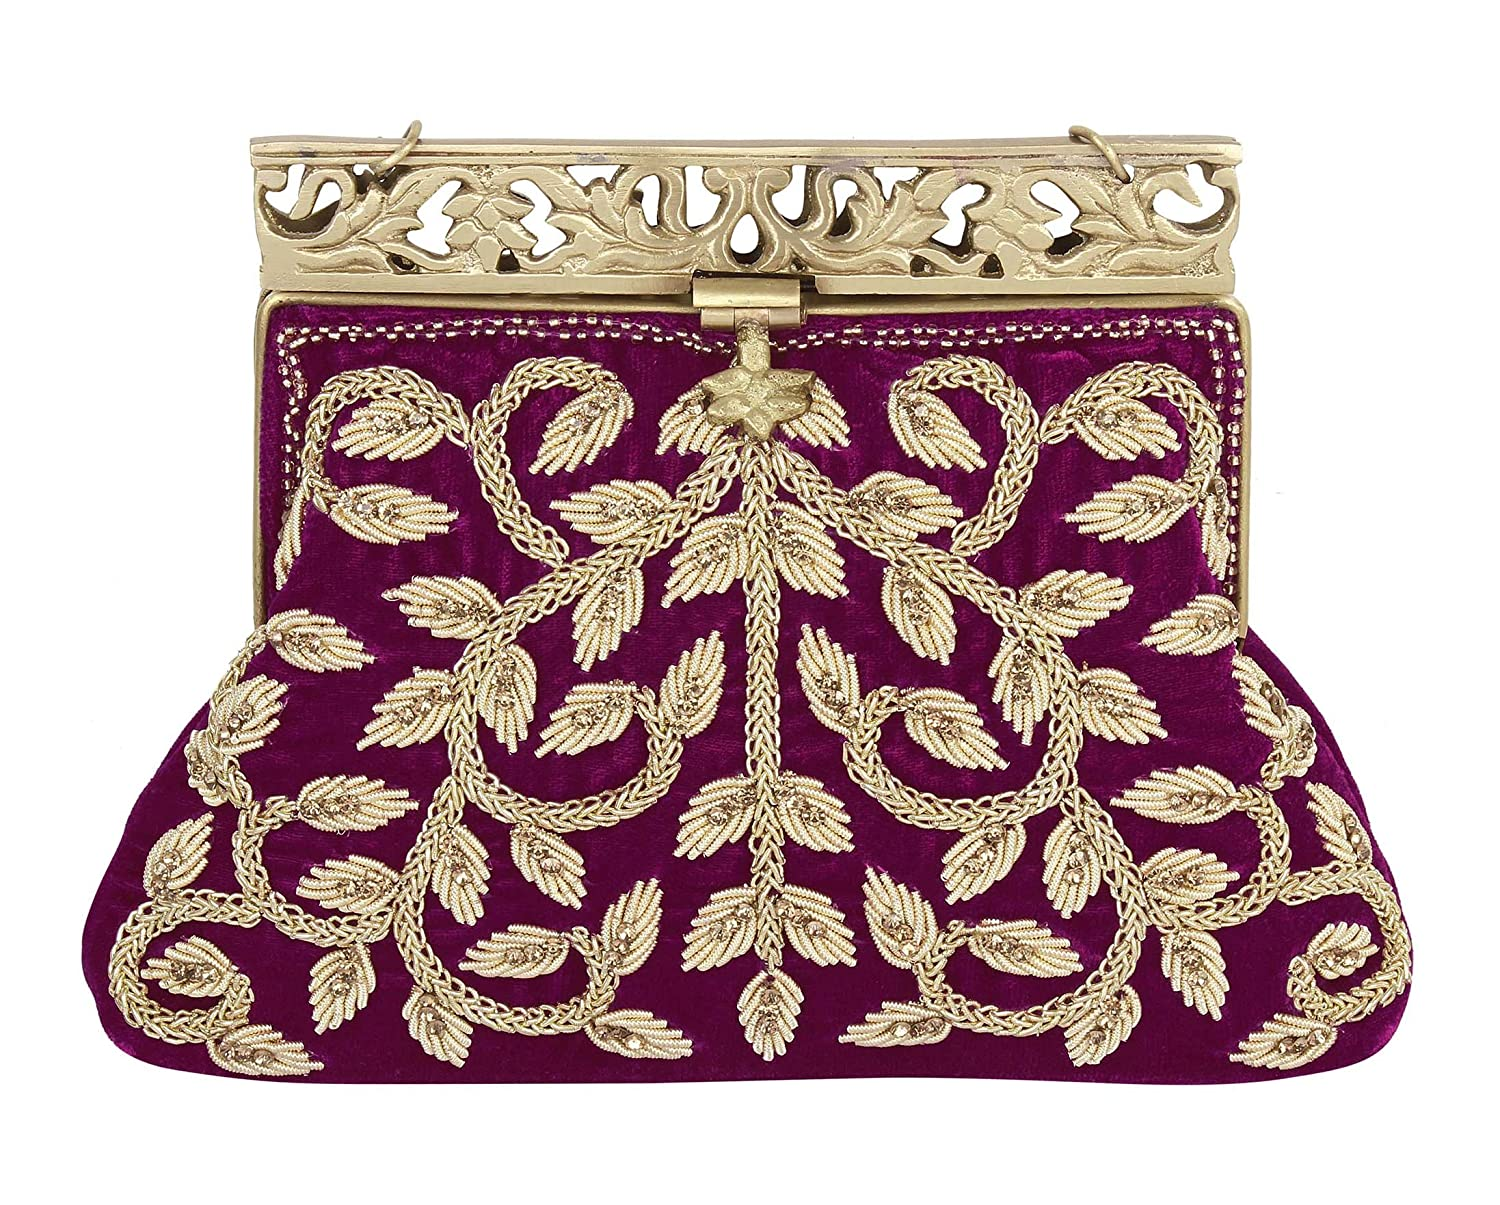 Vintage & Retro Handbags, Purses, Wallets, Bags Purse Collection Rani Handmade Clutch With Embroidery Work Purses For Womens $57.00 AT vintagedancer.com